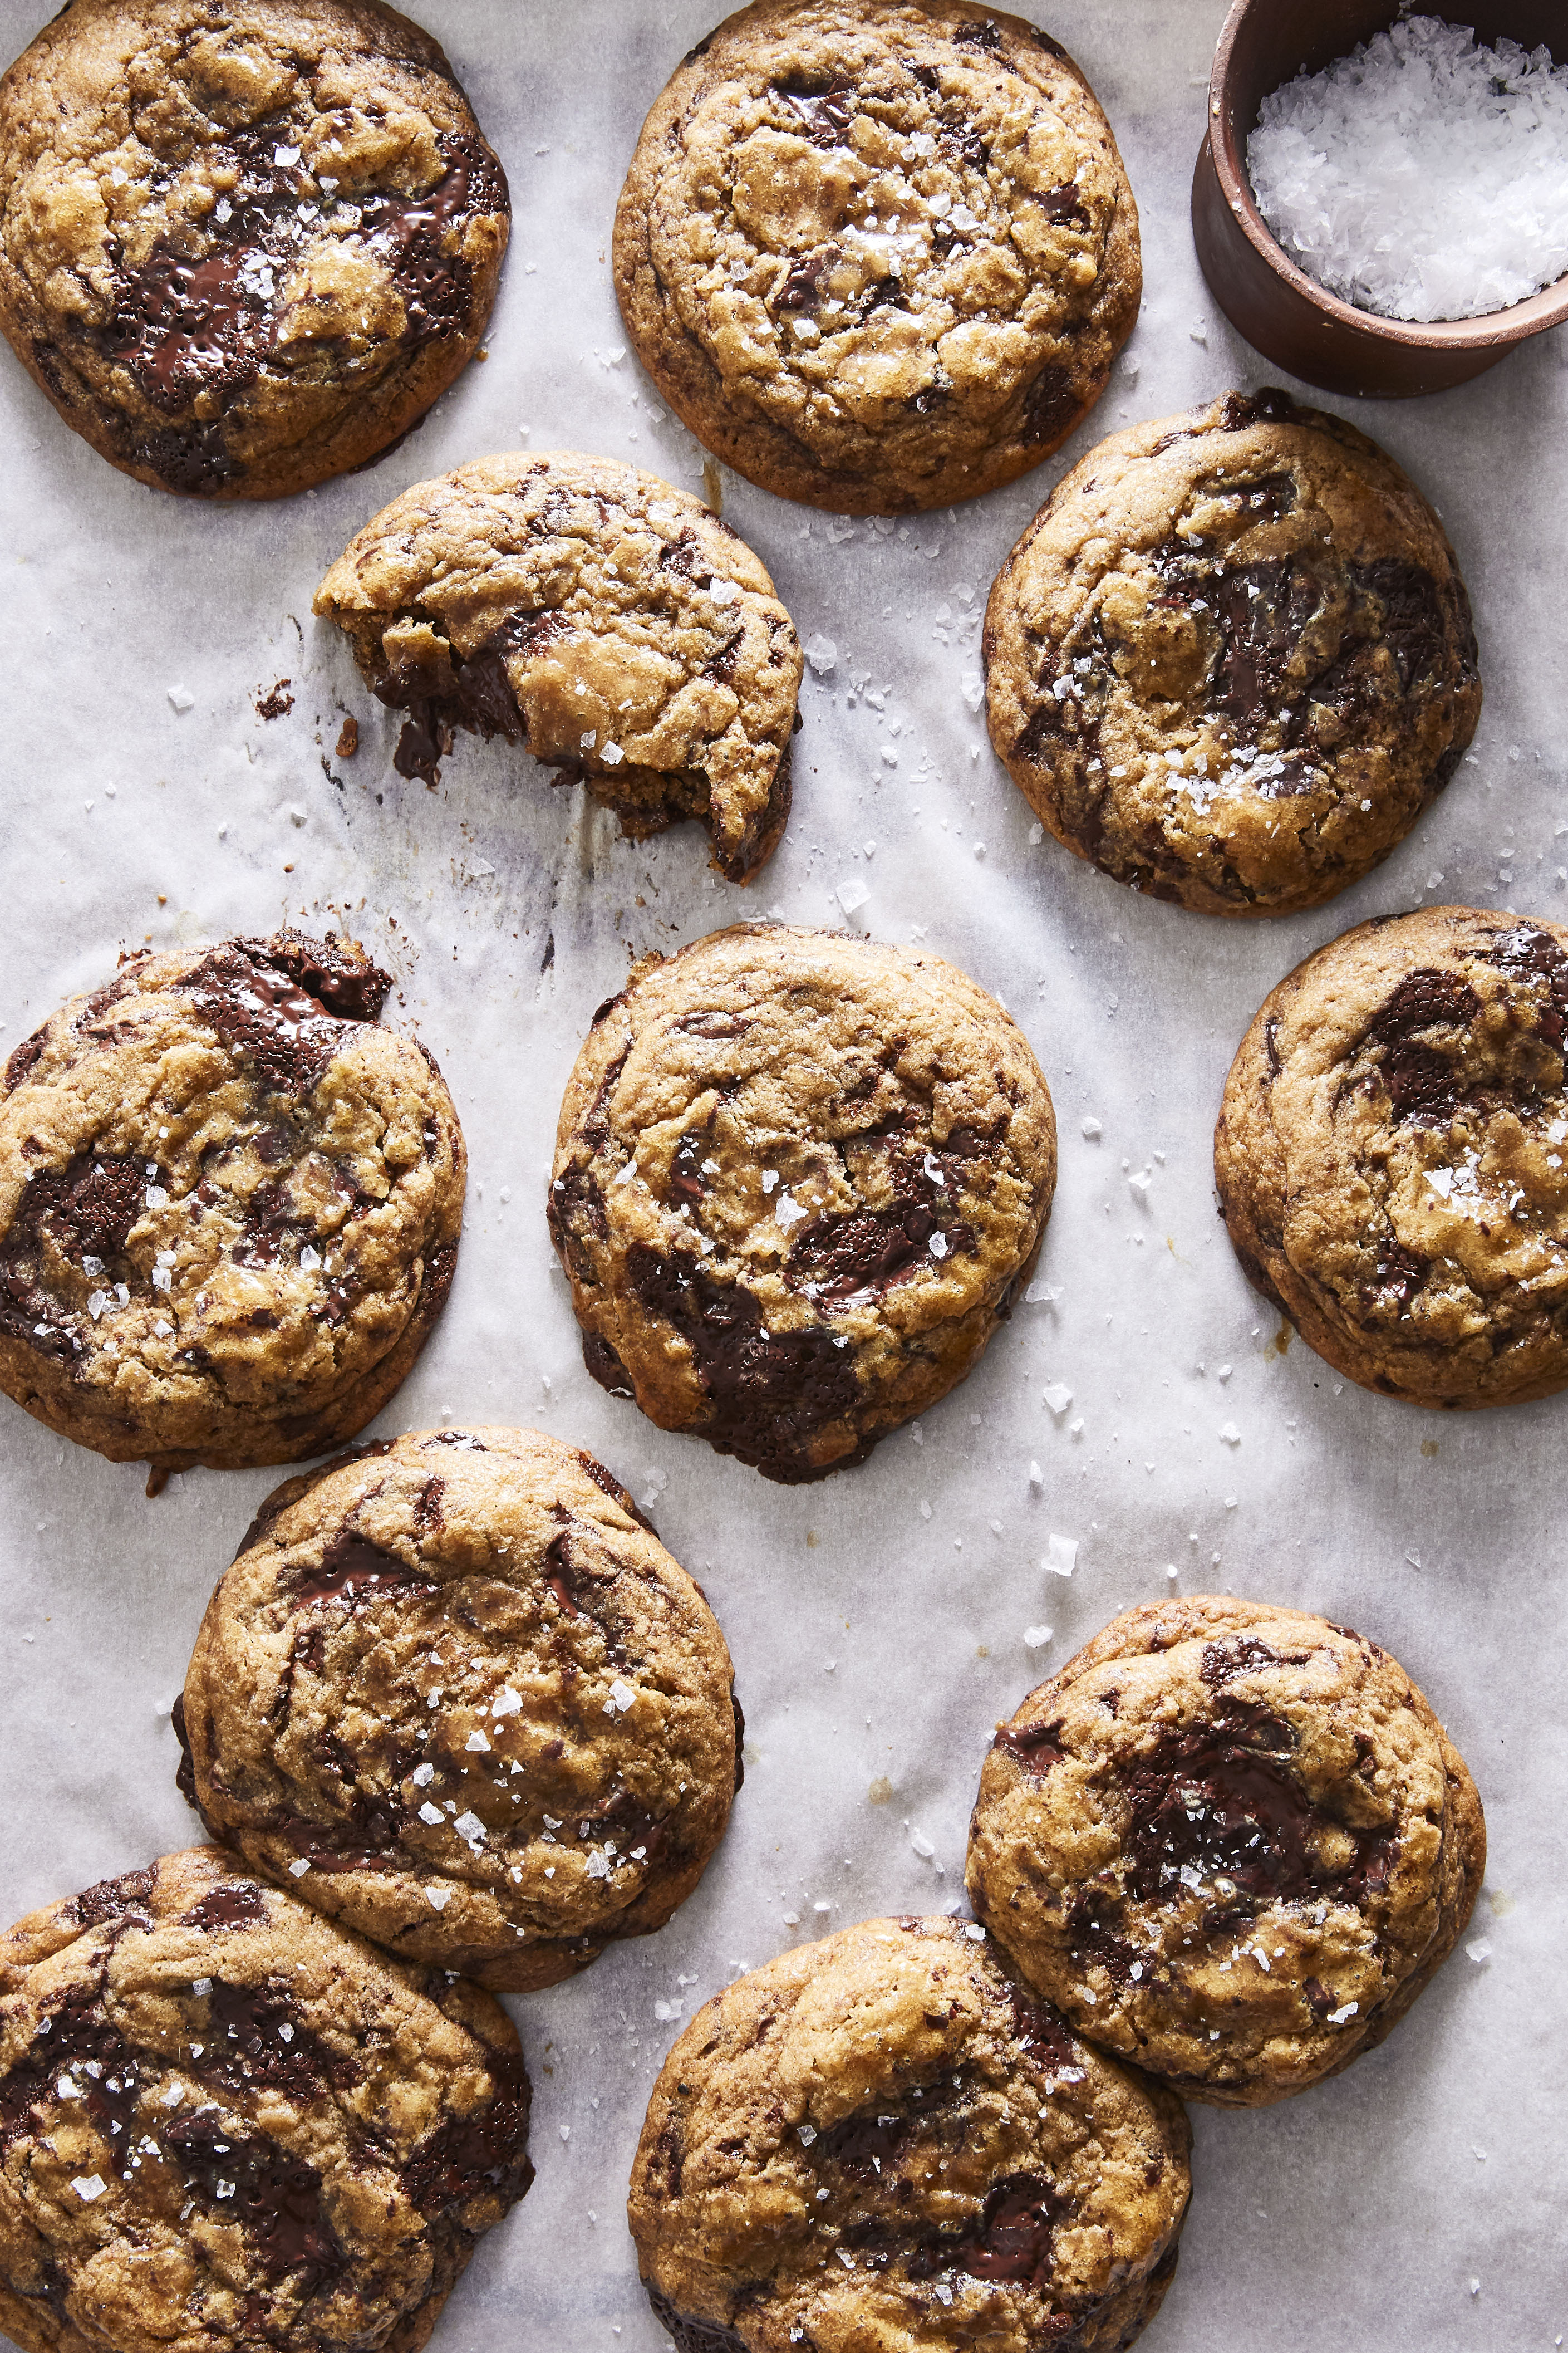 A Chocolate Chip Cookie for Modern Times